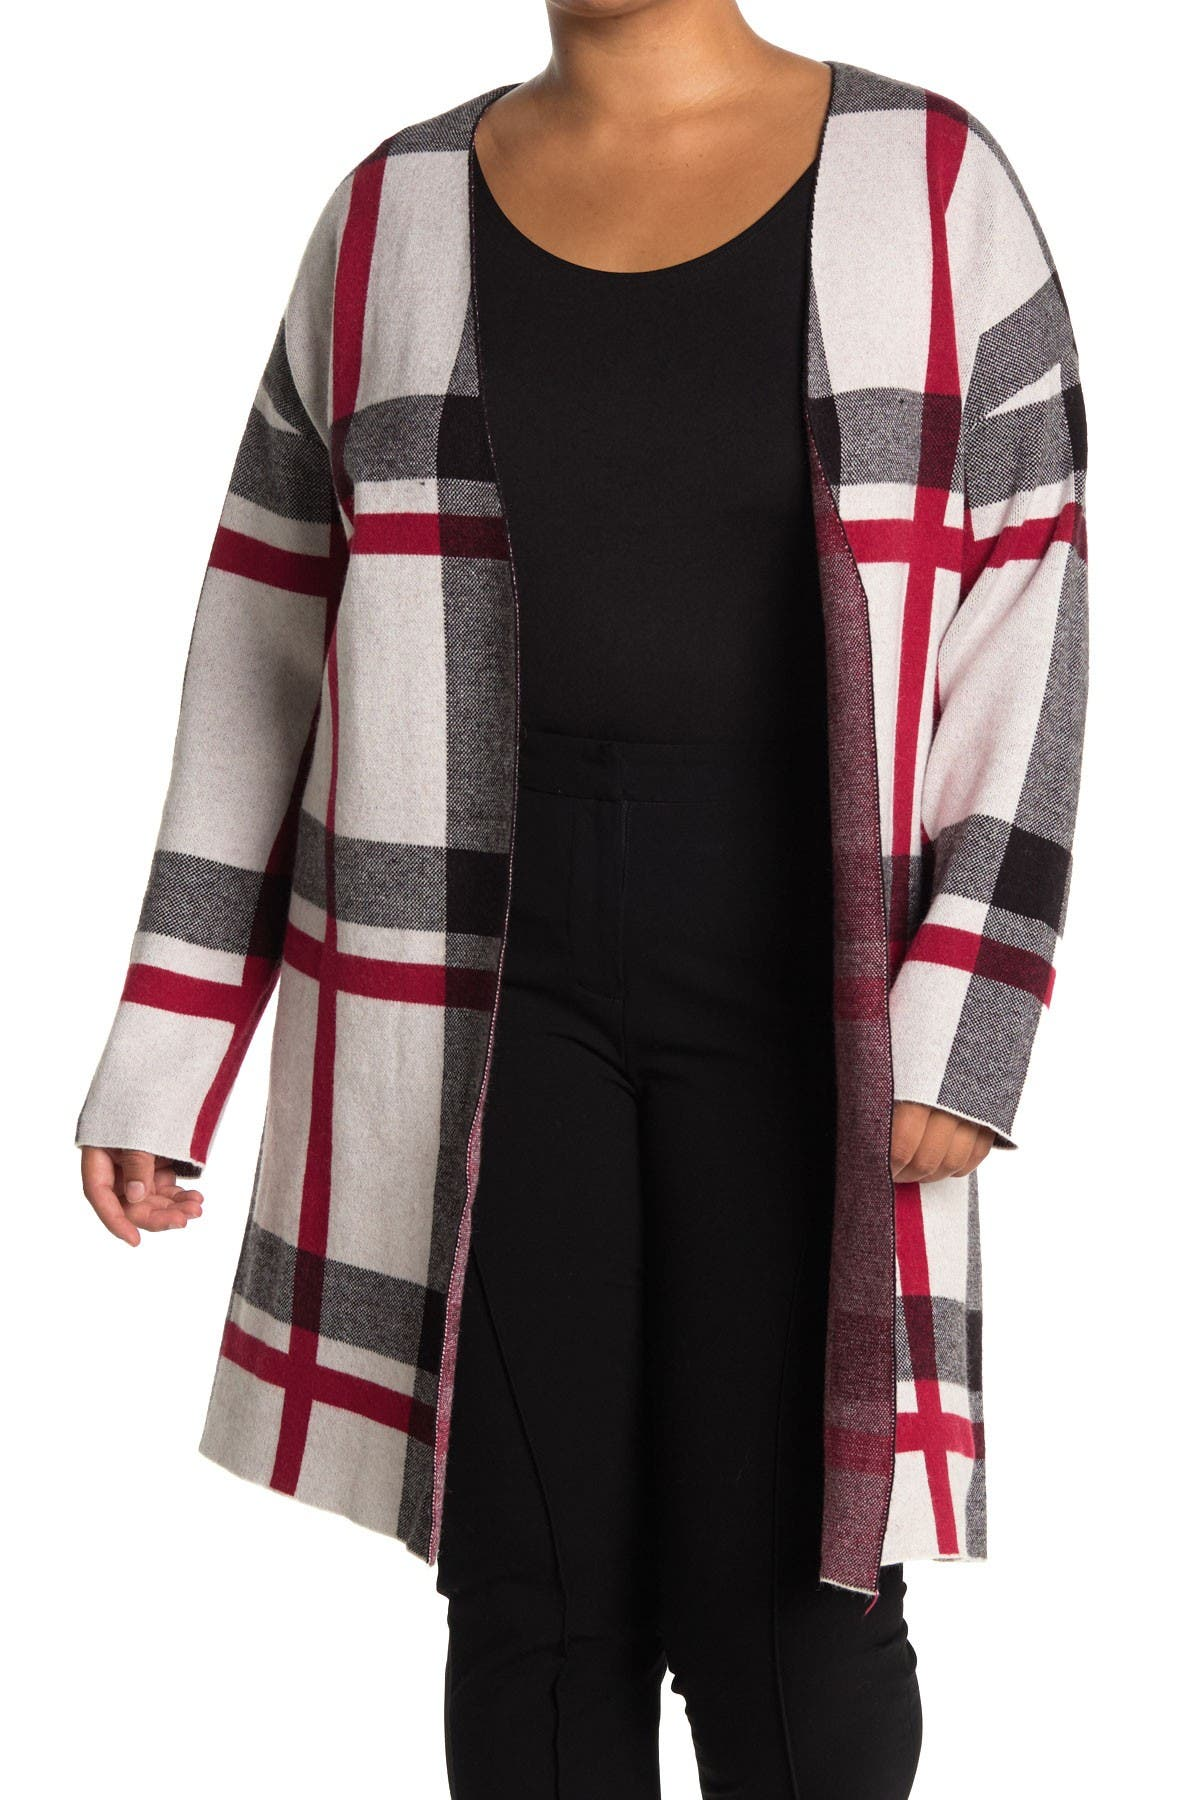 Image of JOSEPH A Maxi Open Front Pattern Cardigan